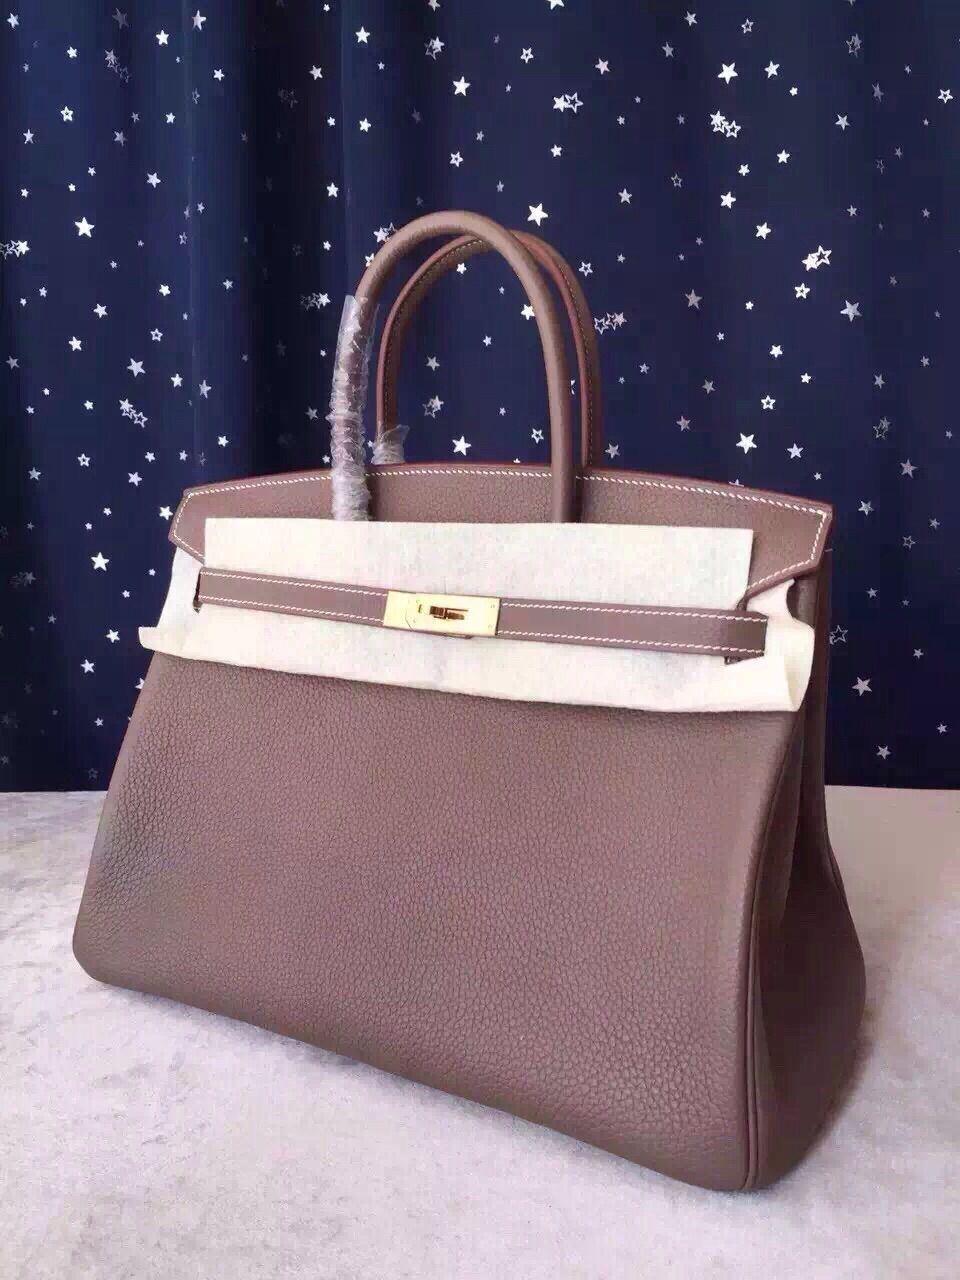 372b4e3f2f1c Hermes Top original quality. Best leather. Feeling soft. Accept PayPal.  Western union. Whatsapp +8618679070015.